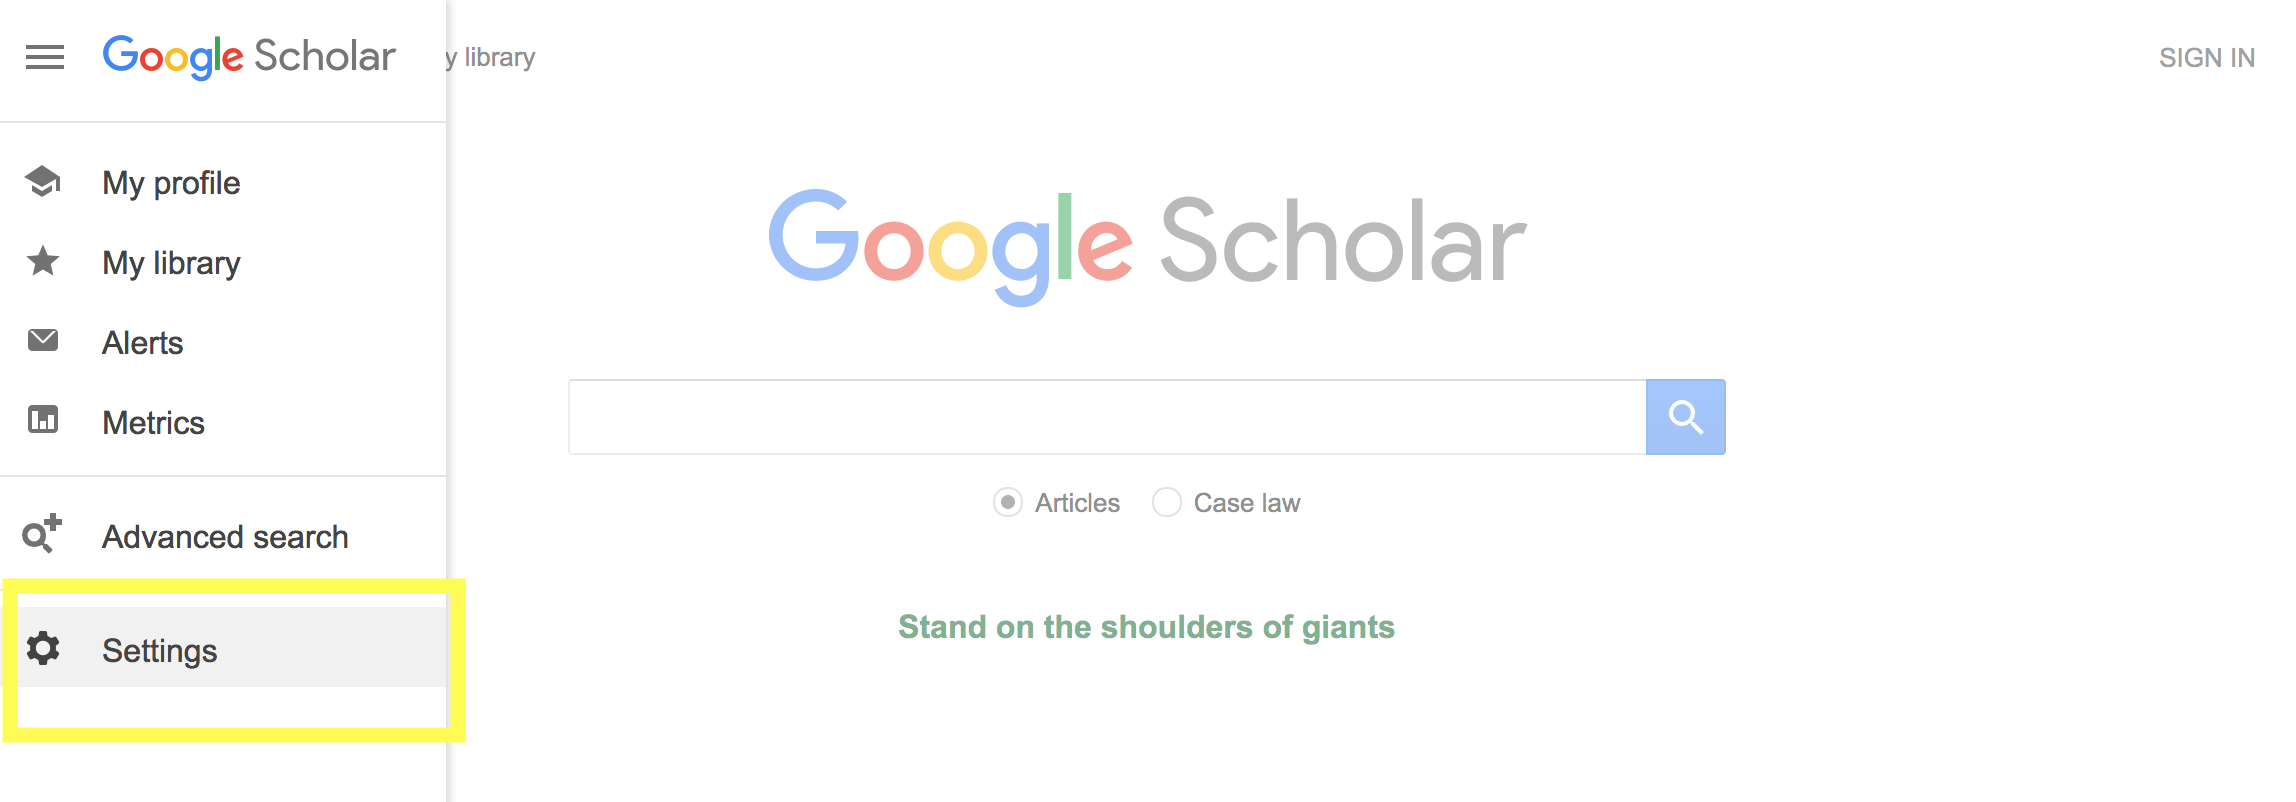 Option Menu for Google Scholar